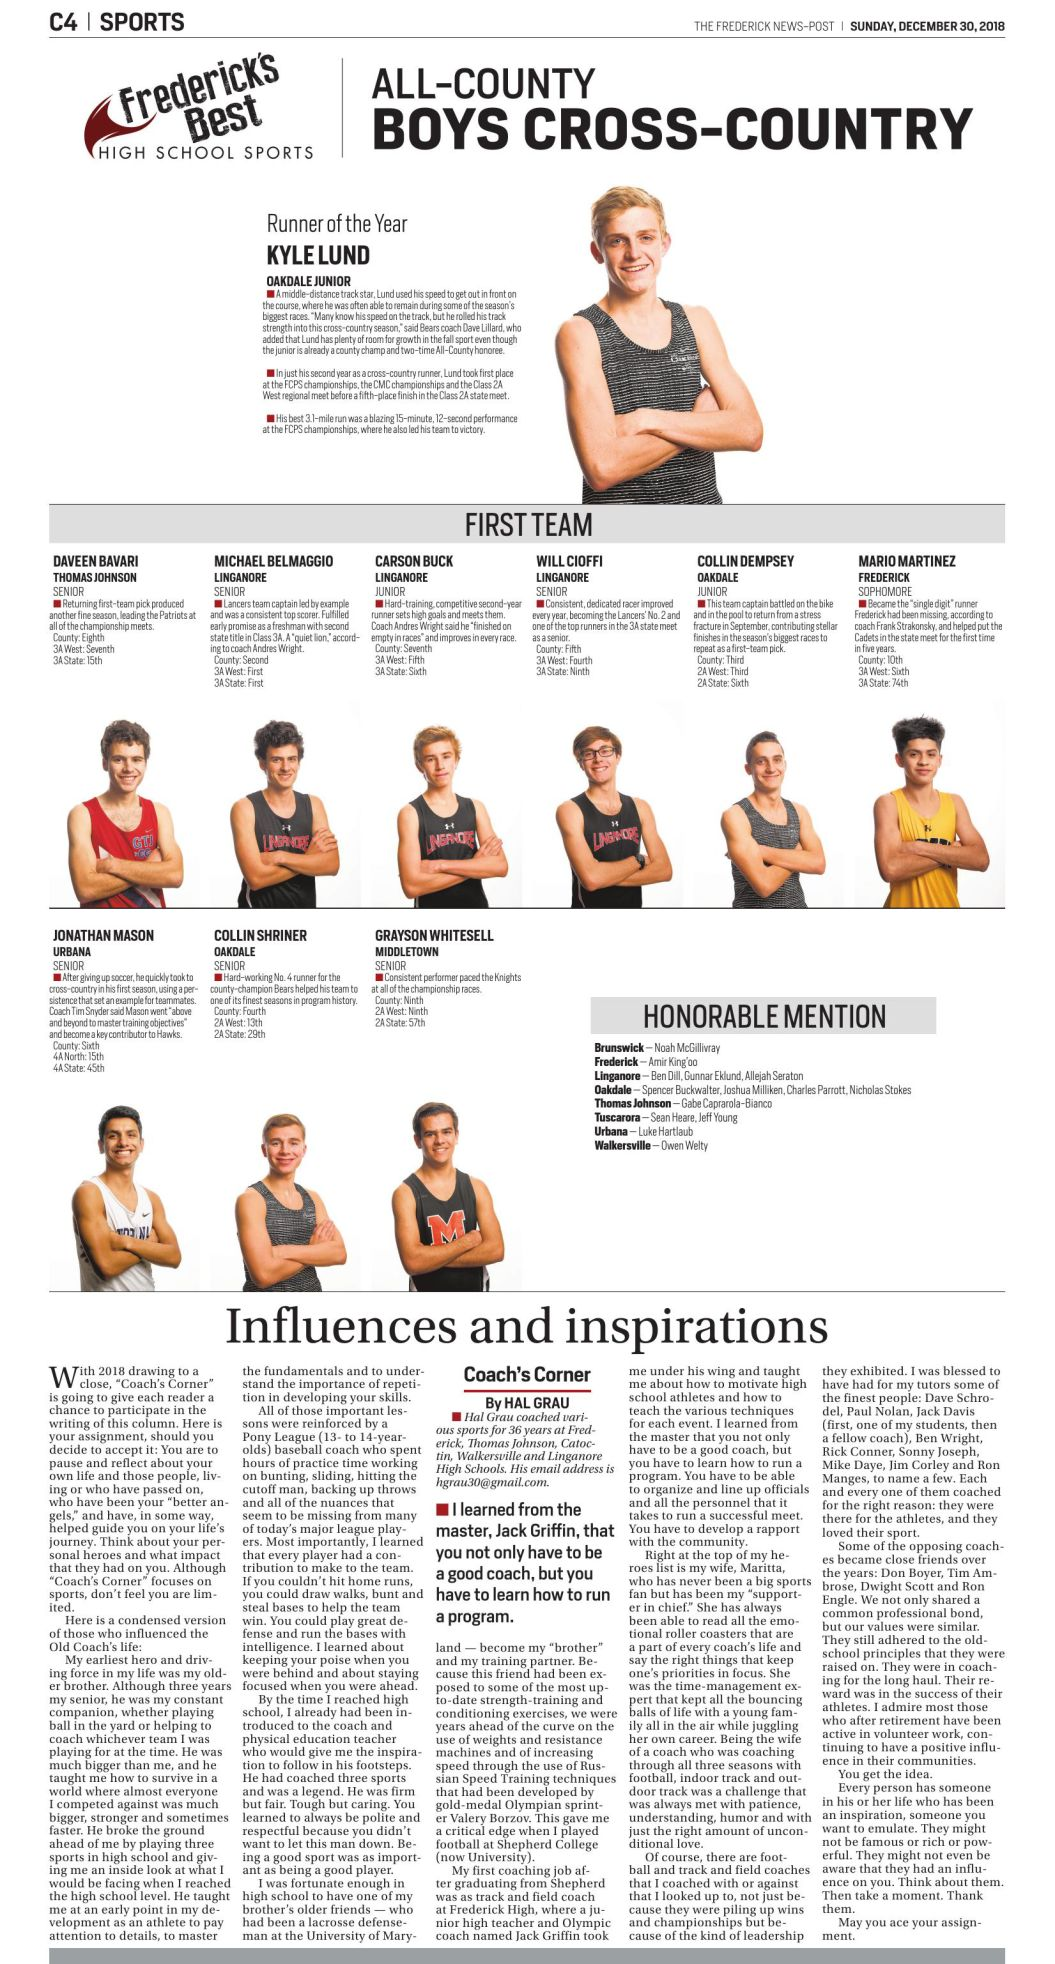 2018 All-County Boys Cross-Country